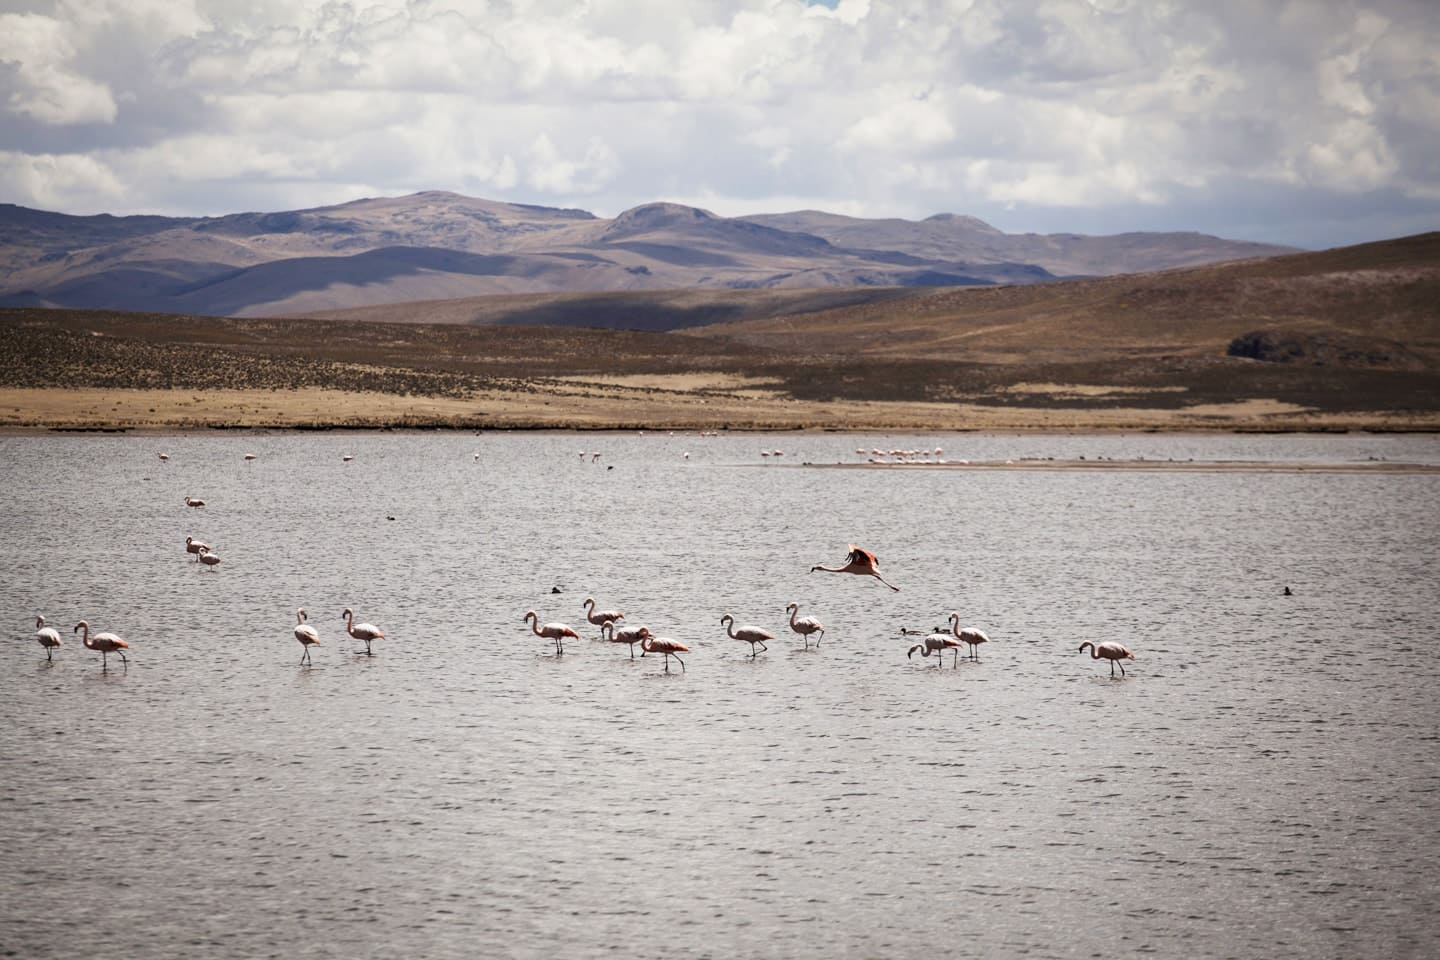 flamingos, birds, animals, nature, lake, landscape - Lagunillas